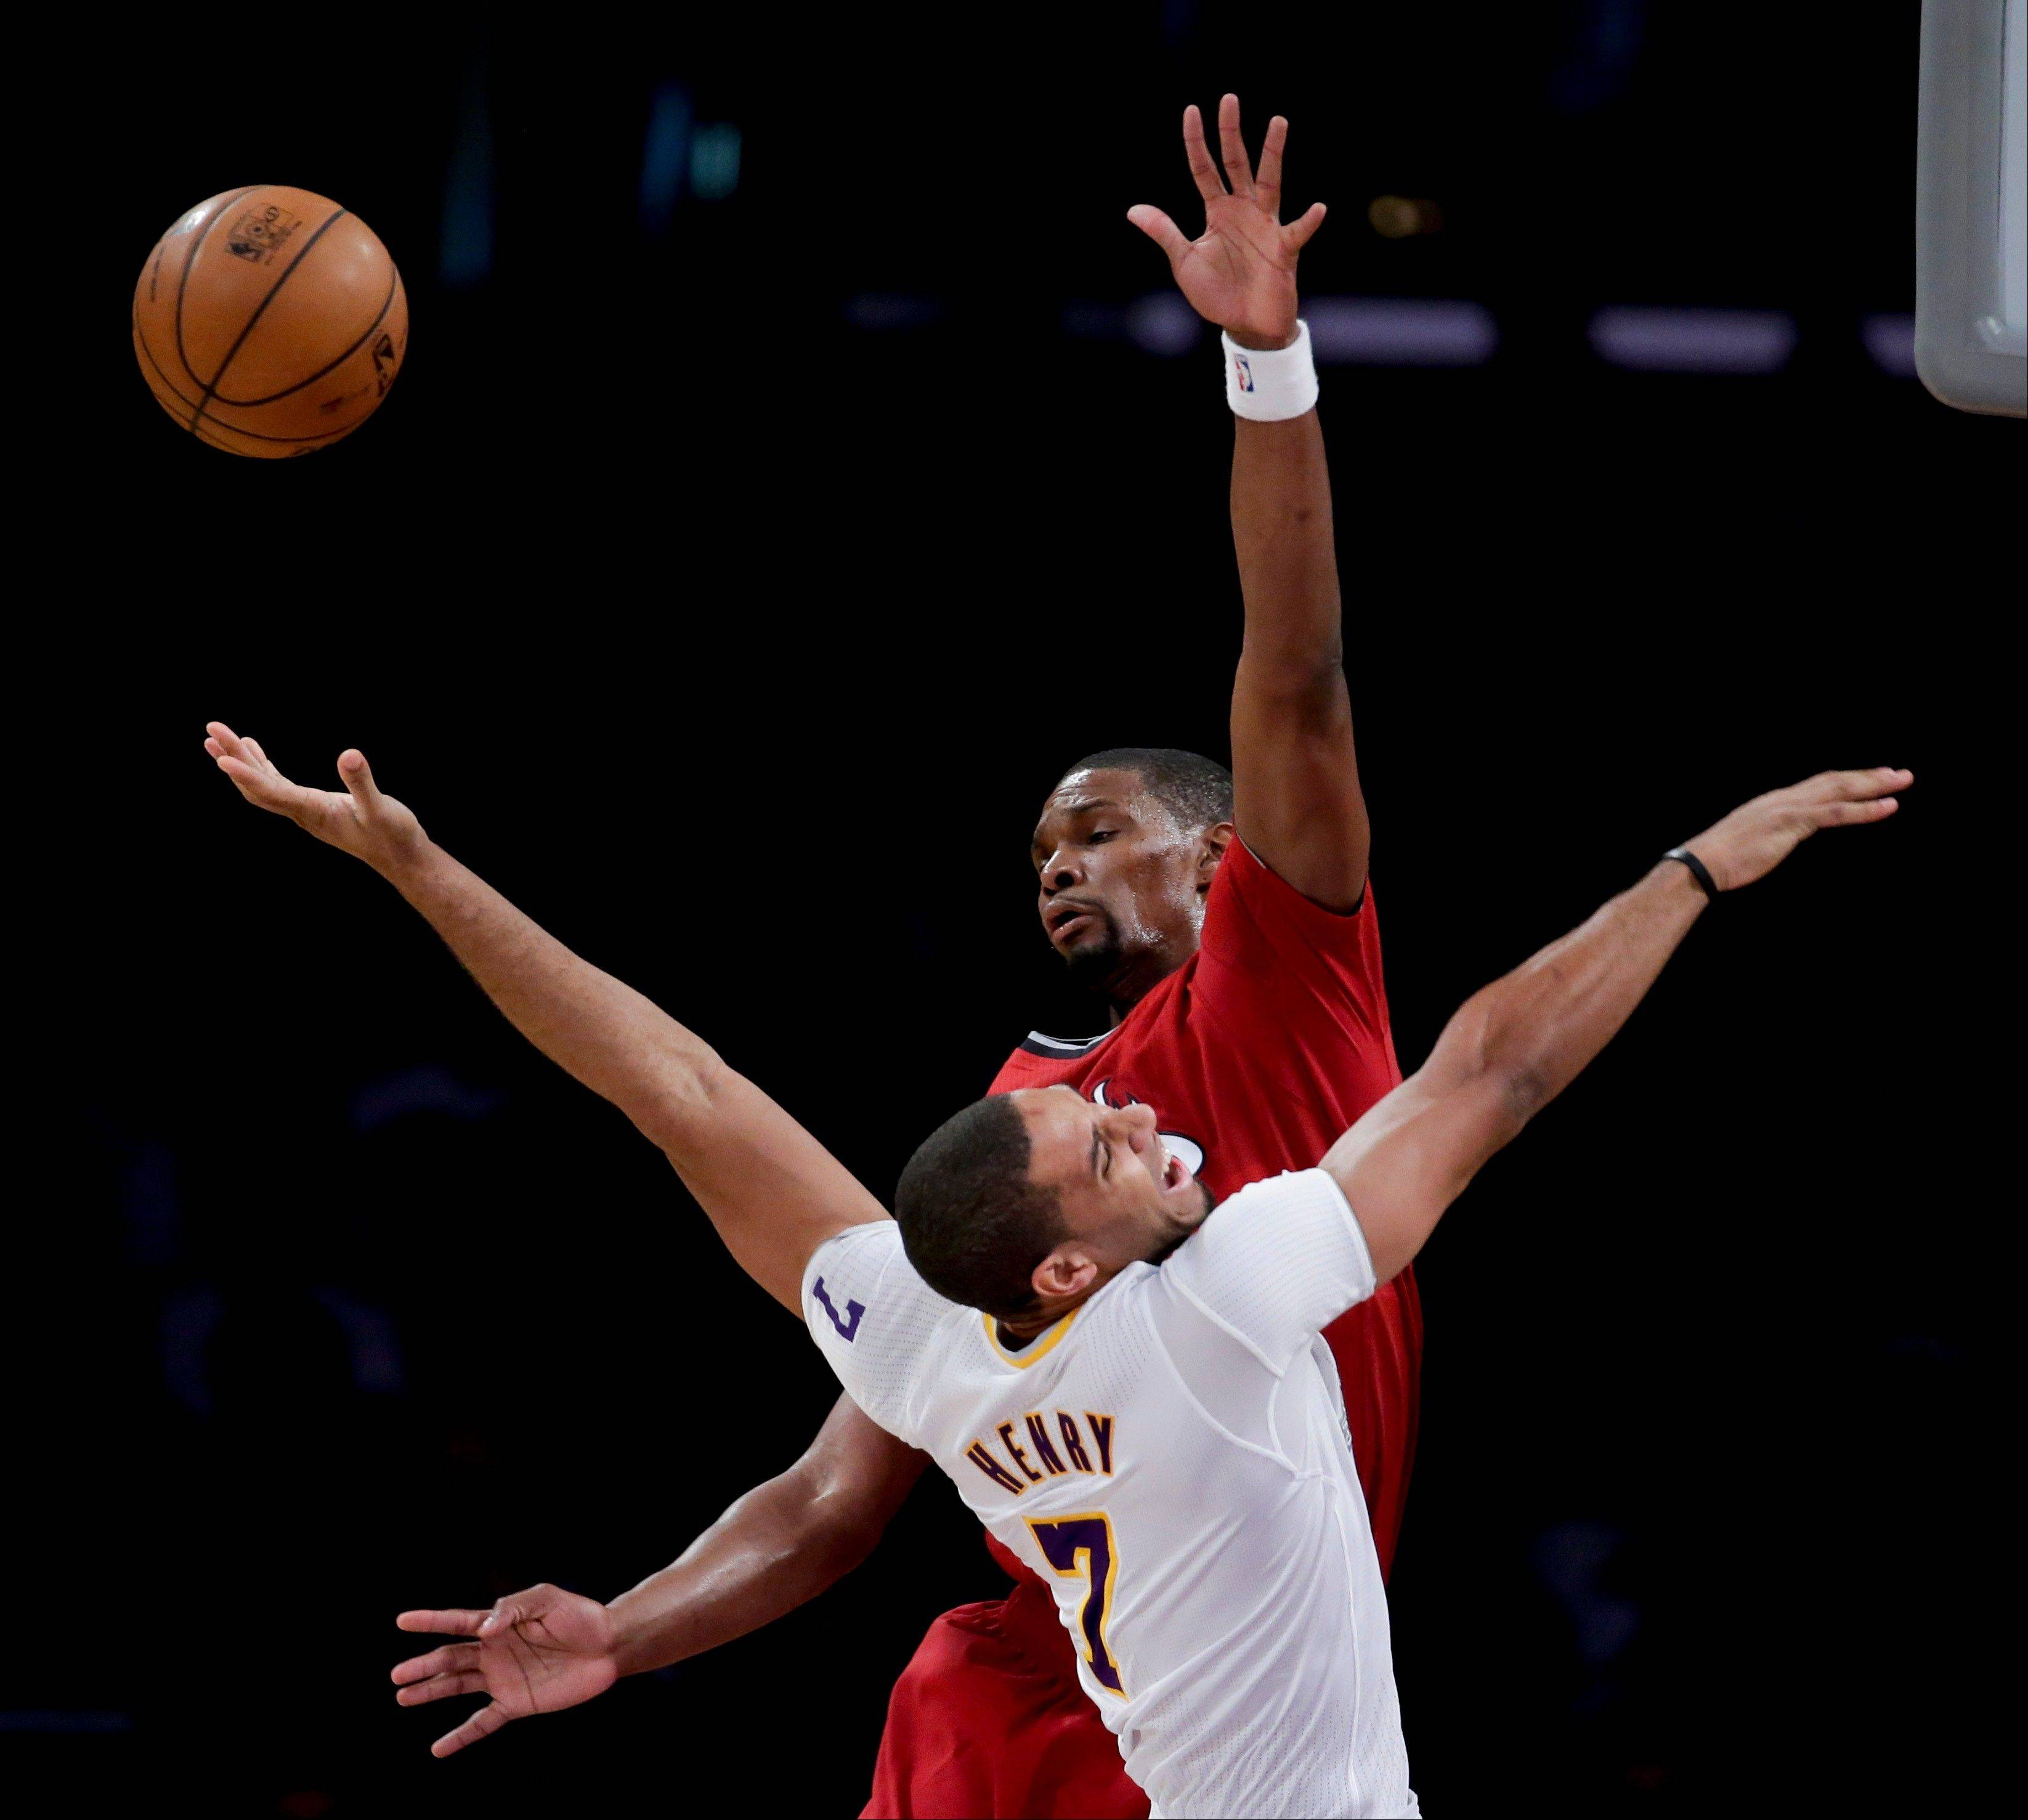 Miami Heat center Chris Bosh, top, blocks a shot by Los Angeles Lakers forward Xavier Henry during the second half of Wednesday�s game in Los Angeles.